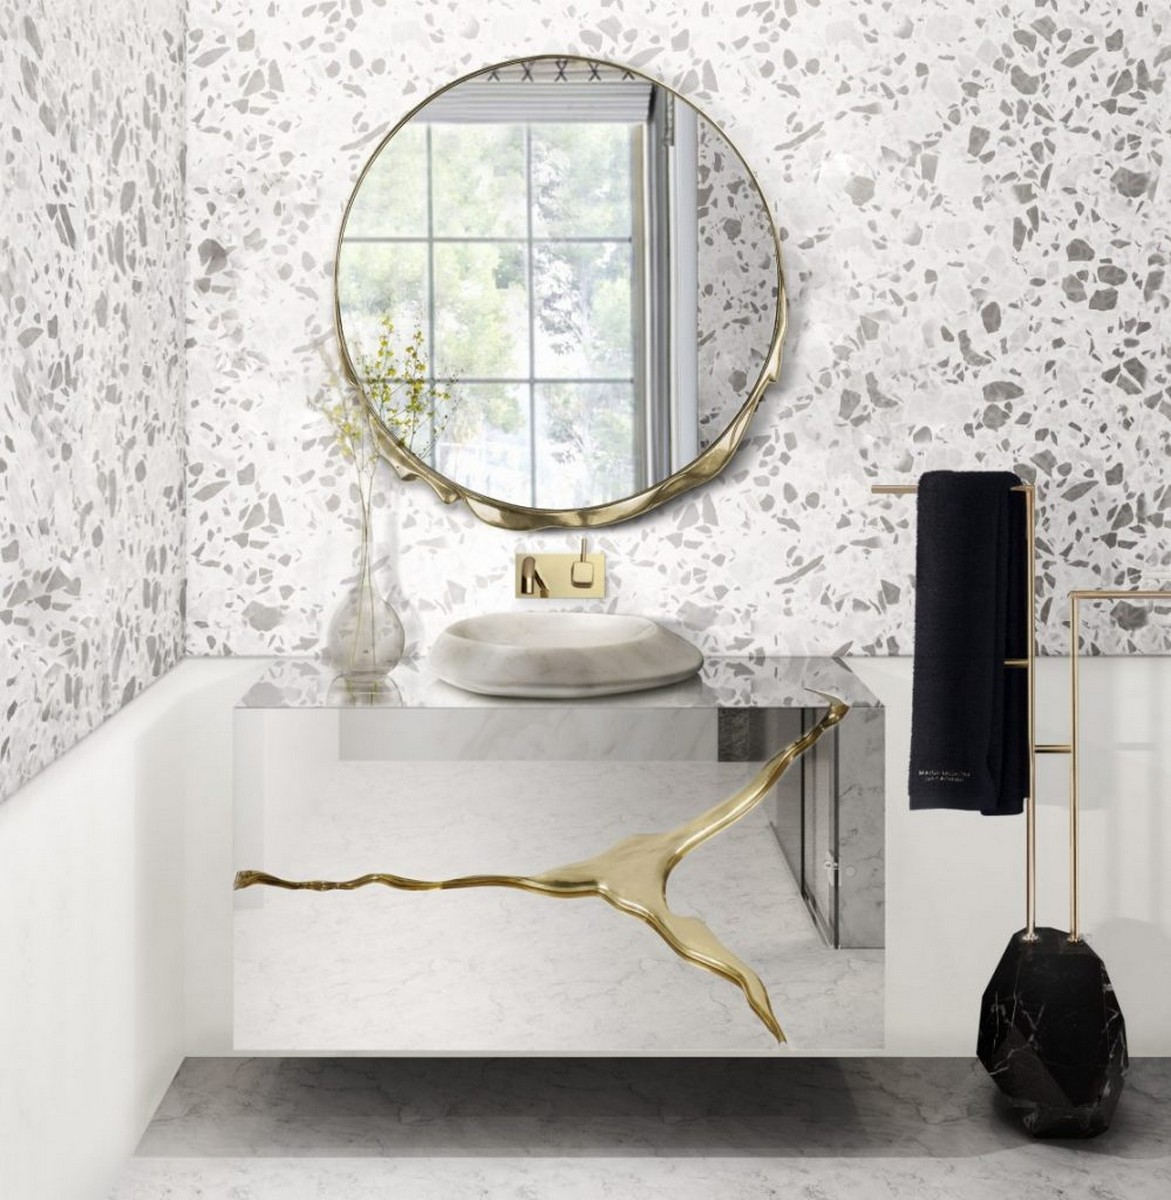 Interiores para Baños: Ideas poderosas y lujuosas para cualquier espacio interiores para baños Interiores para Baños: Ideas poderosas y lujuosas para cualquier espacio Terrazo Bathroom Ideas Everything About This Trend 6 scaled 1